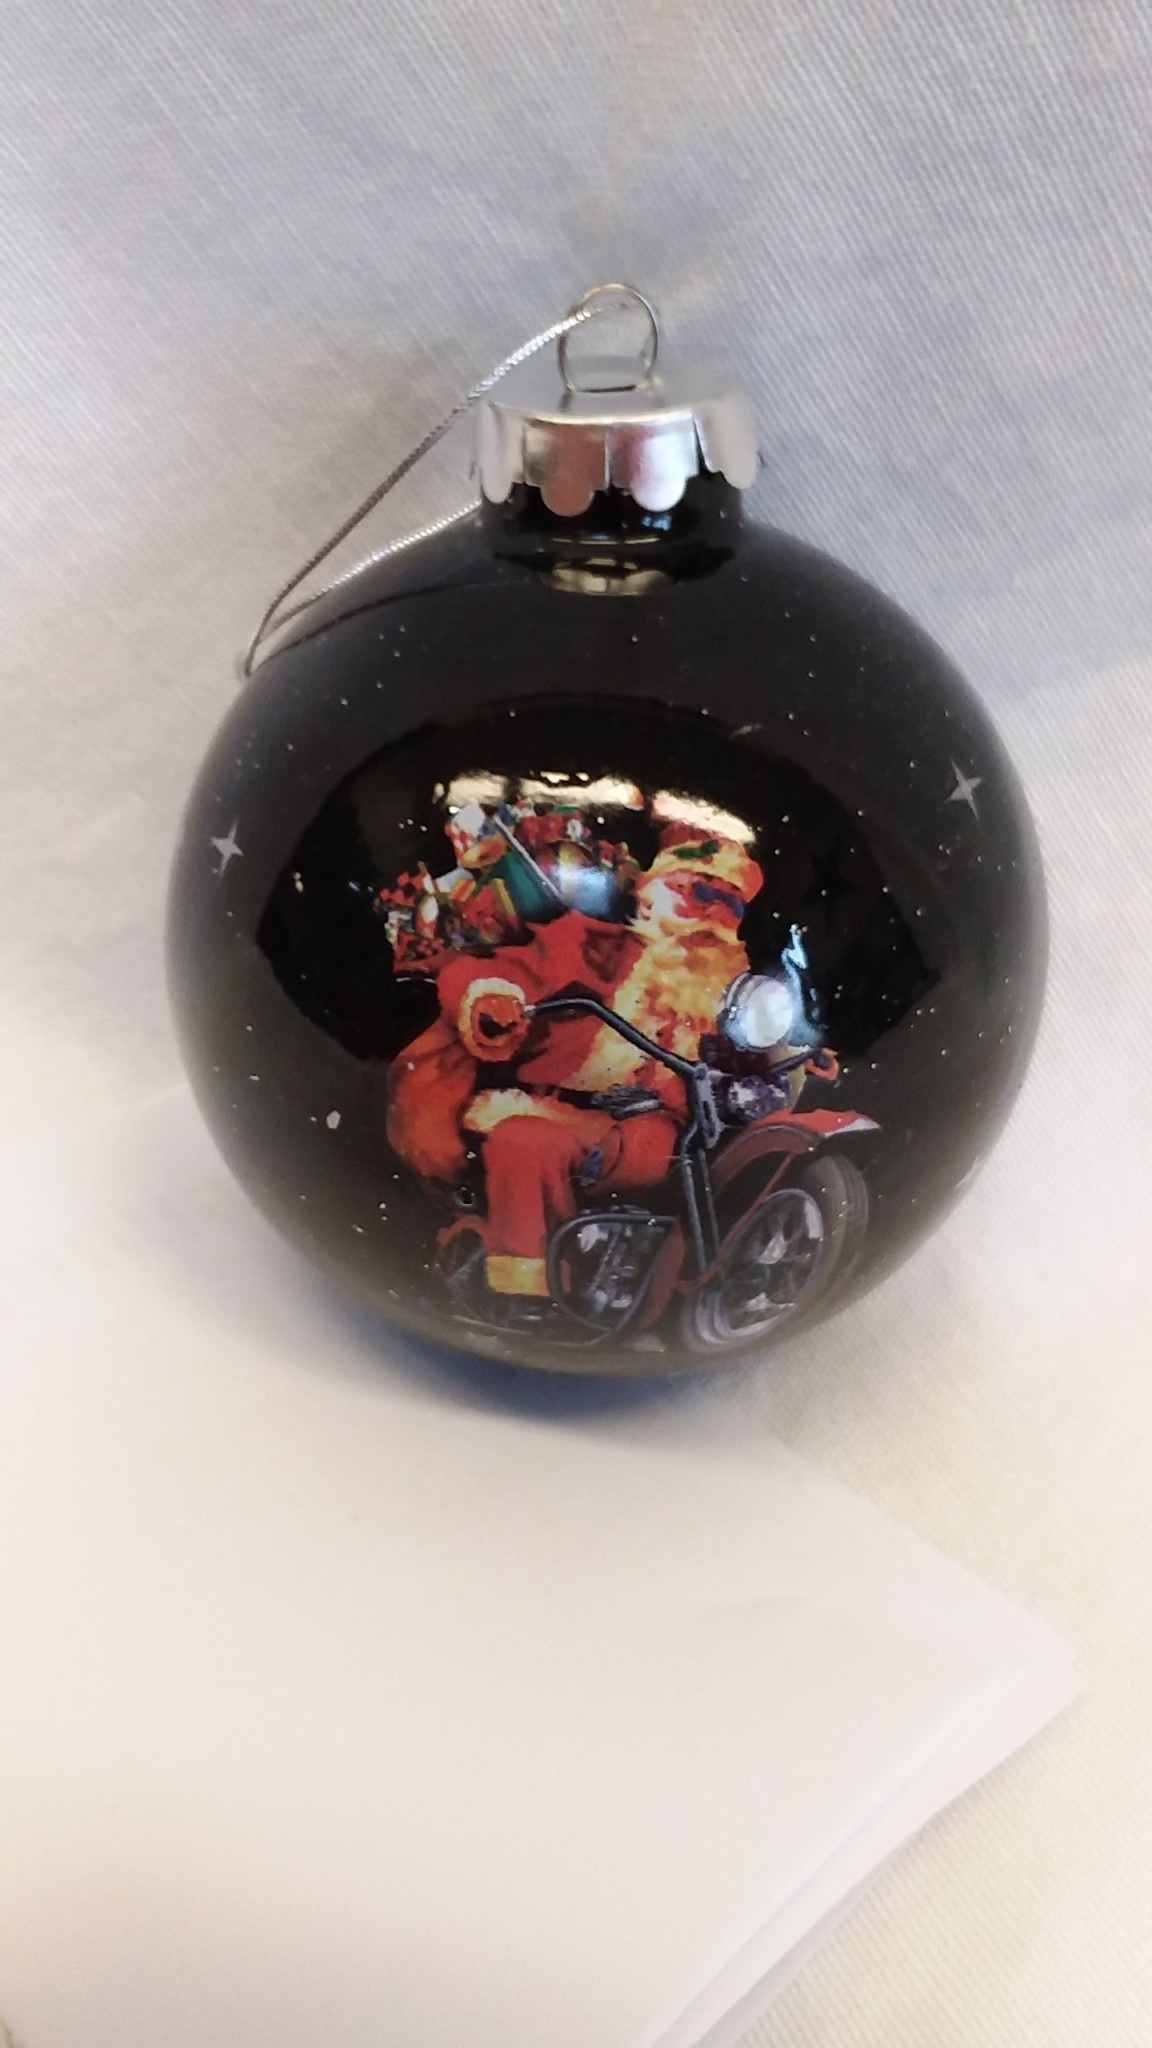 Harley Davidson 2020 Christmas Ornaments Harley Davidson Christmas Ornament, 2005   The Second Knob Gifts